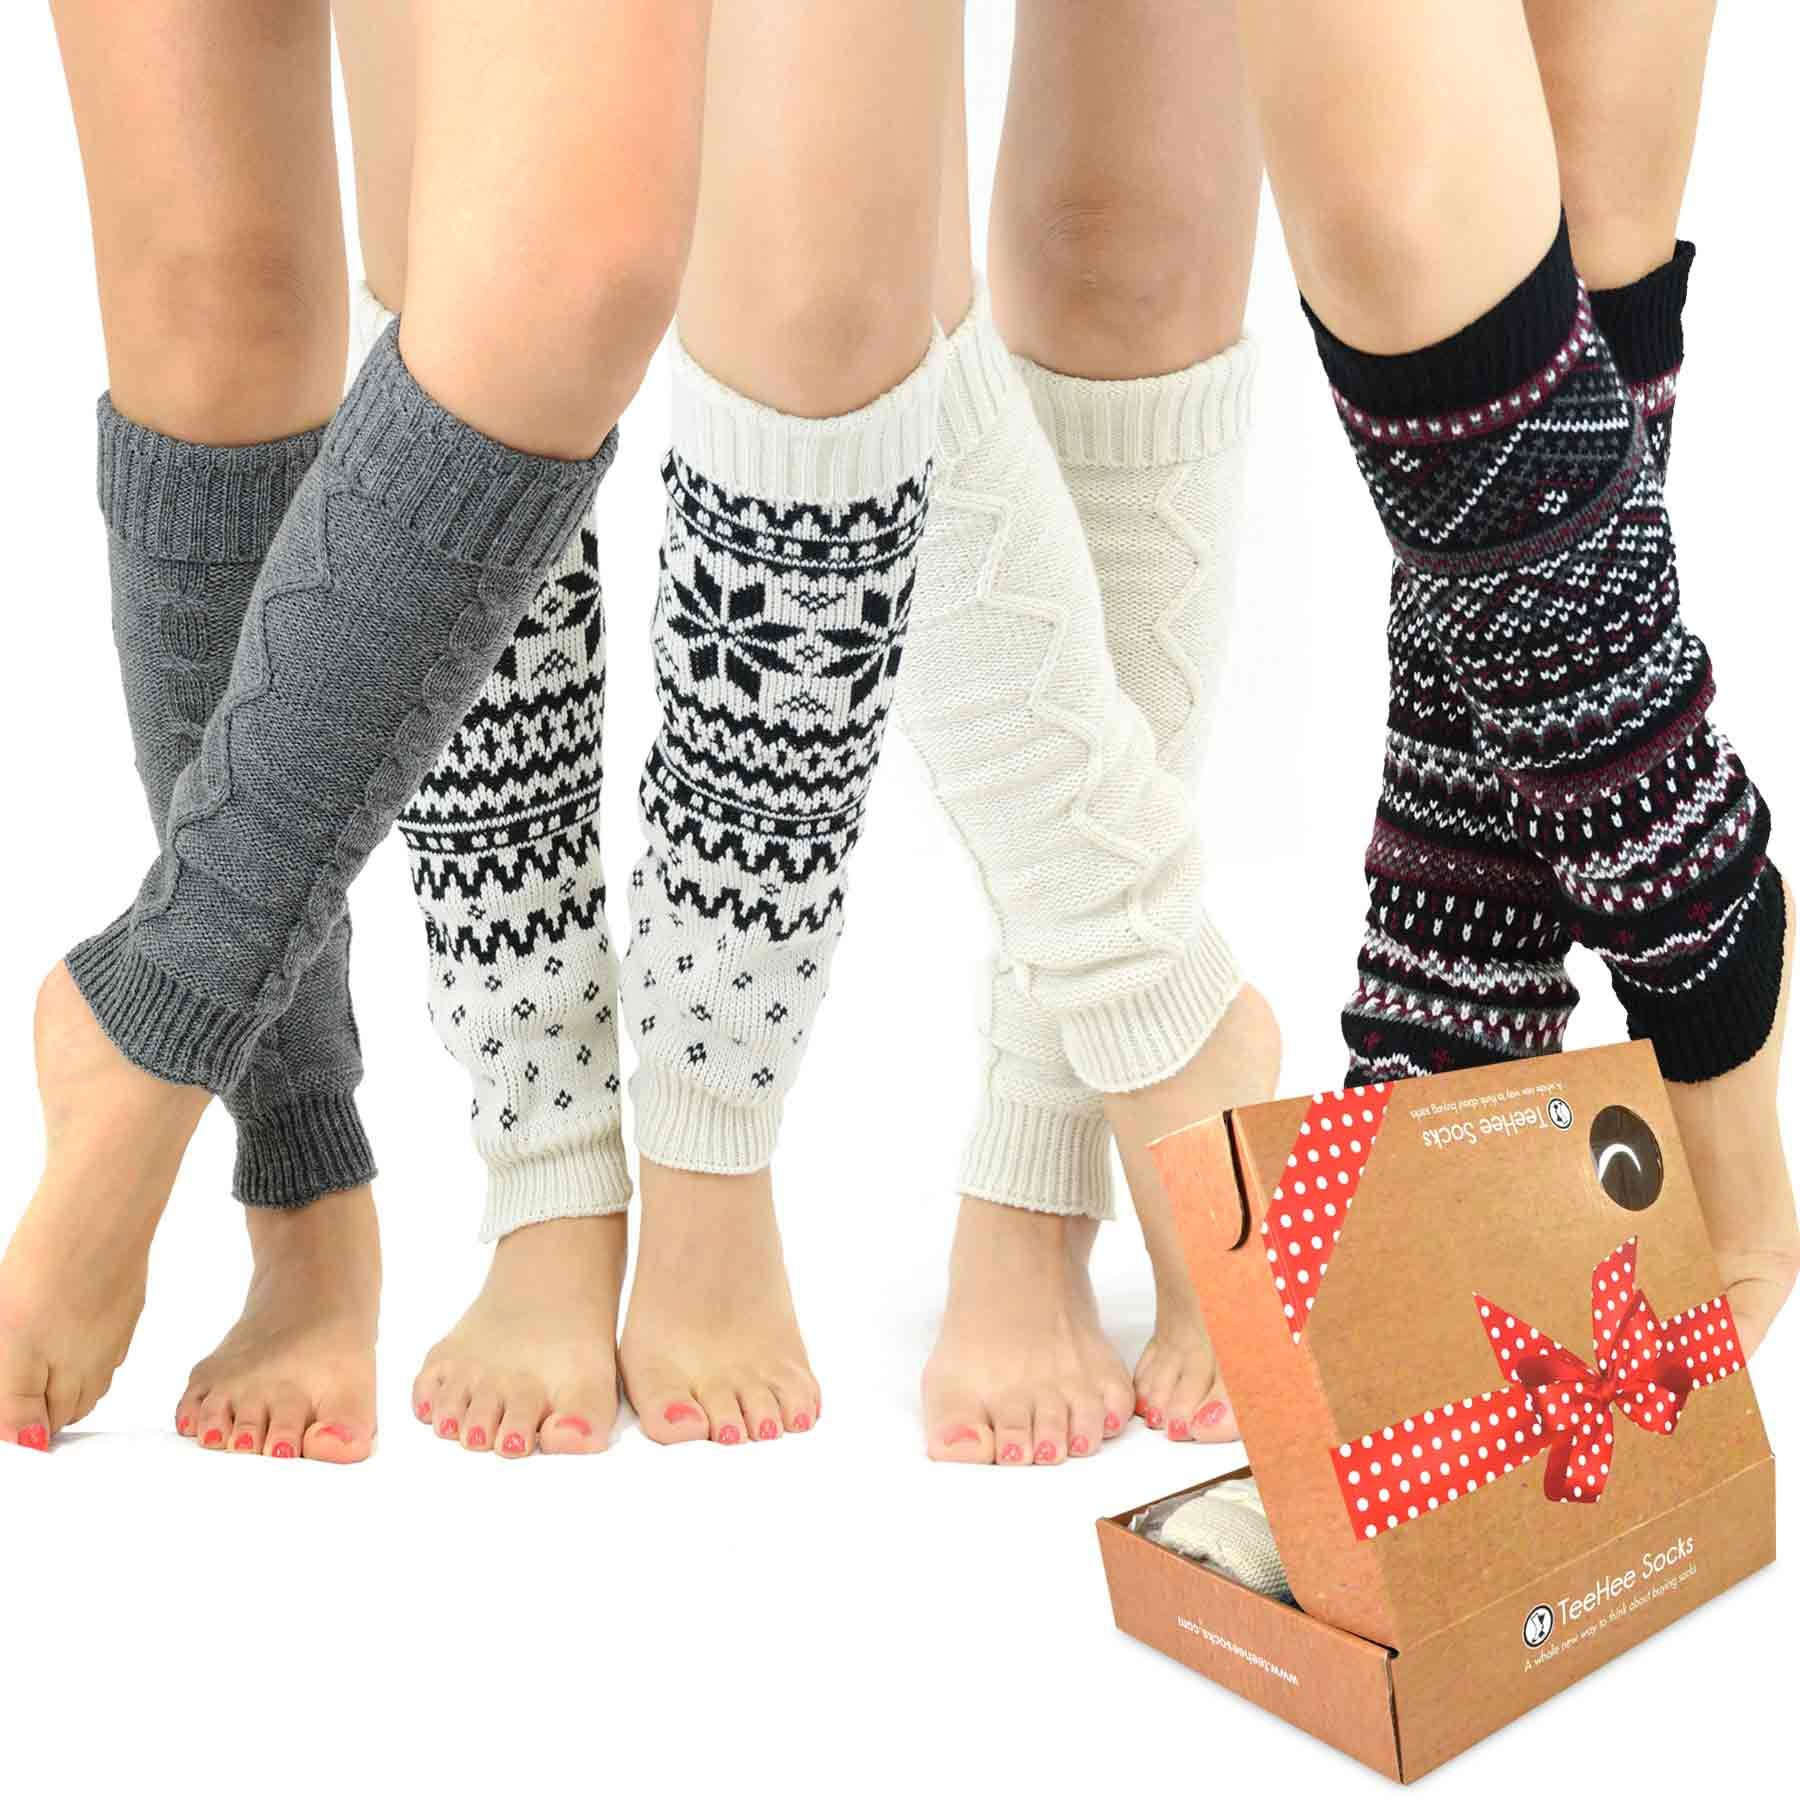 TeeHee Gift Box Women's Fashion Leg Warmers 4-Pack Assorted Colors (Assorted B)